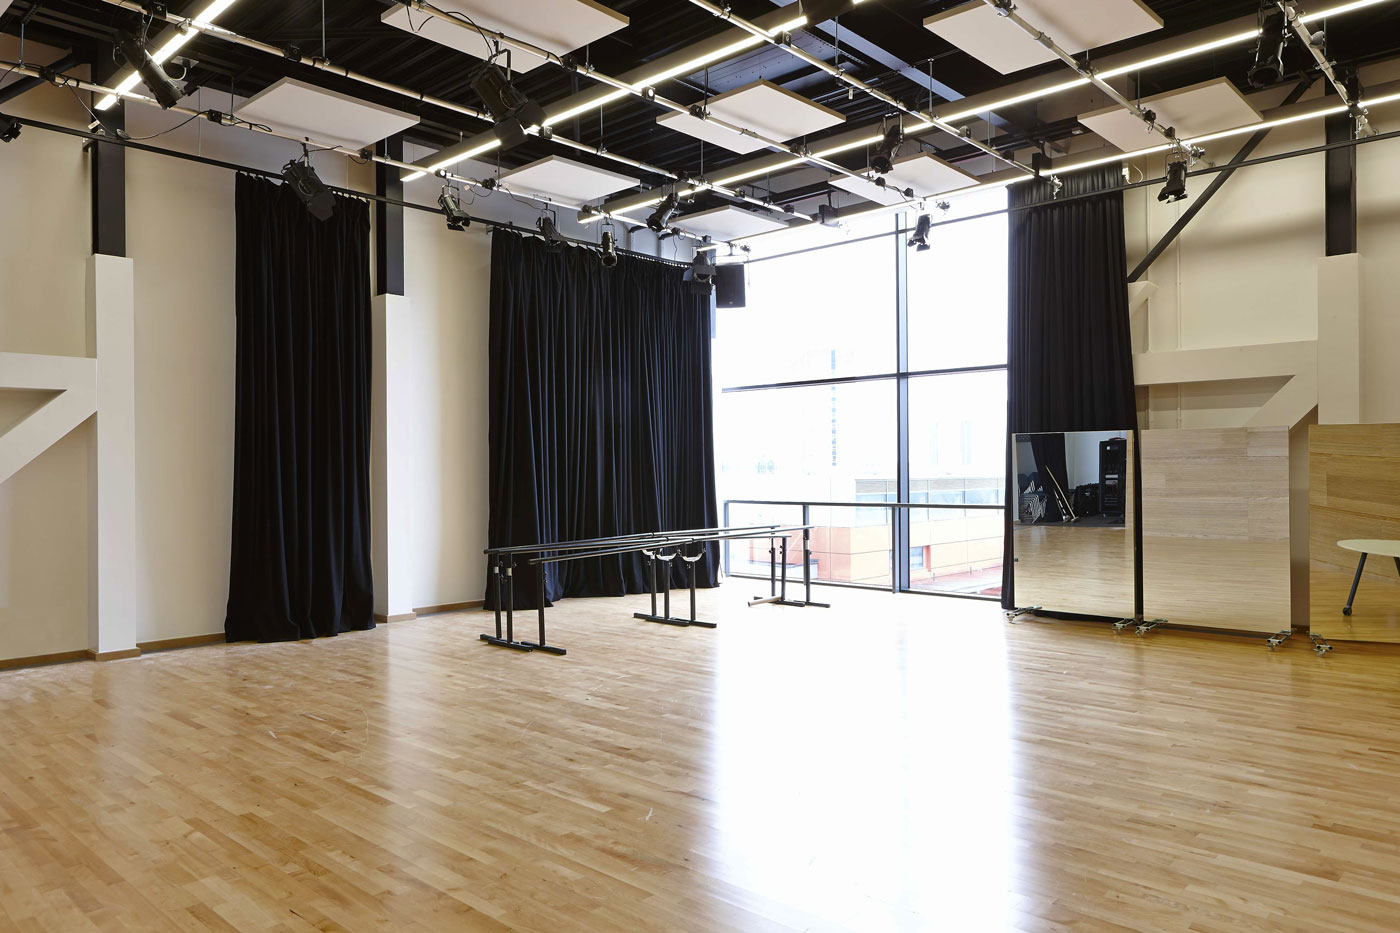 University Square Stratford Dance Room | Interior Architecture Photography | Commercial Buildings Photographer